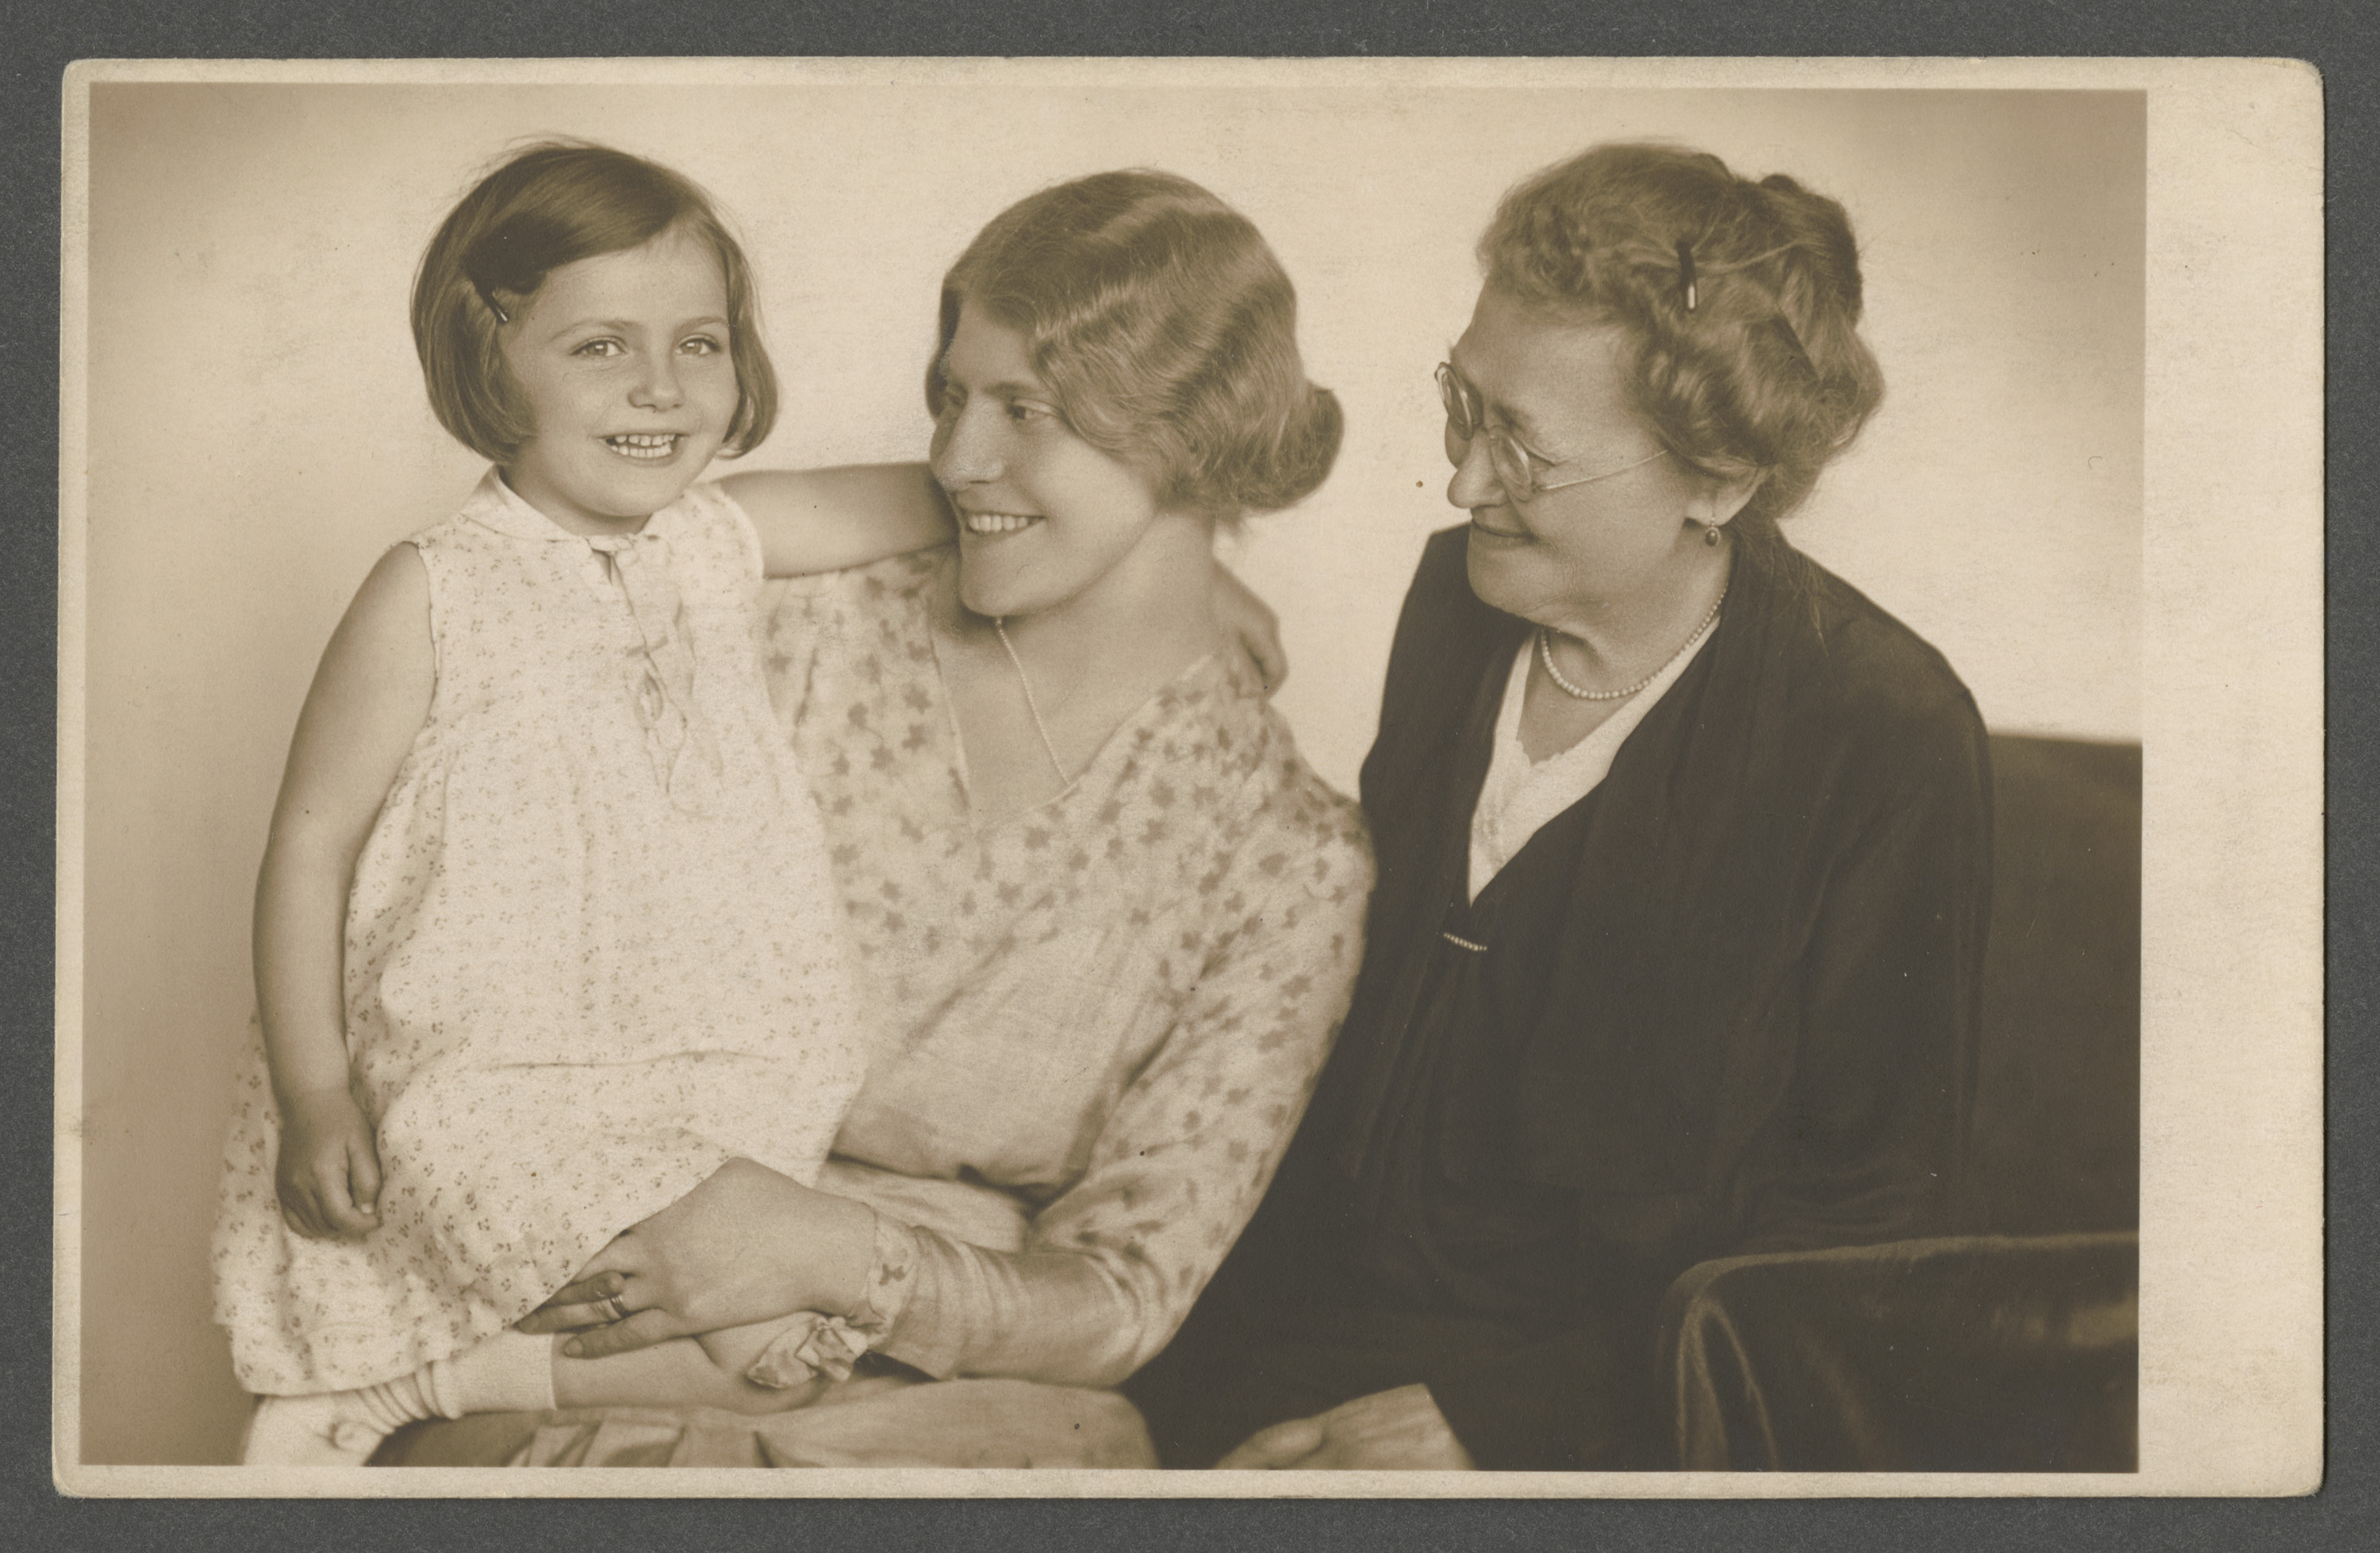 Three generation photograph of a grandmother, mother, and daughter.  Pictured (left to right) are Renee and Louise Goldschmied, and Rosa (nee Loewenthal) Ohs.